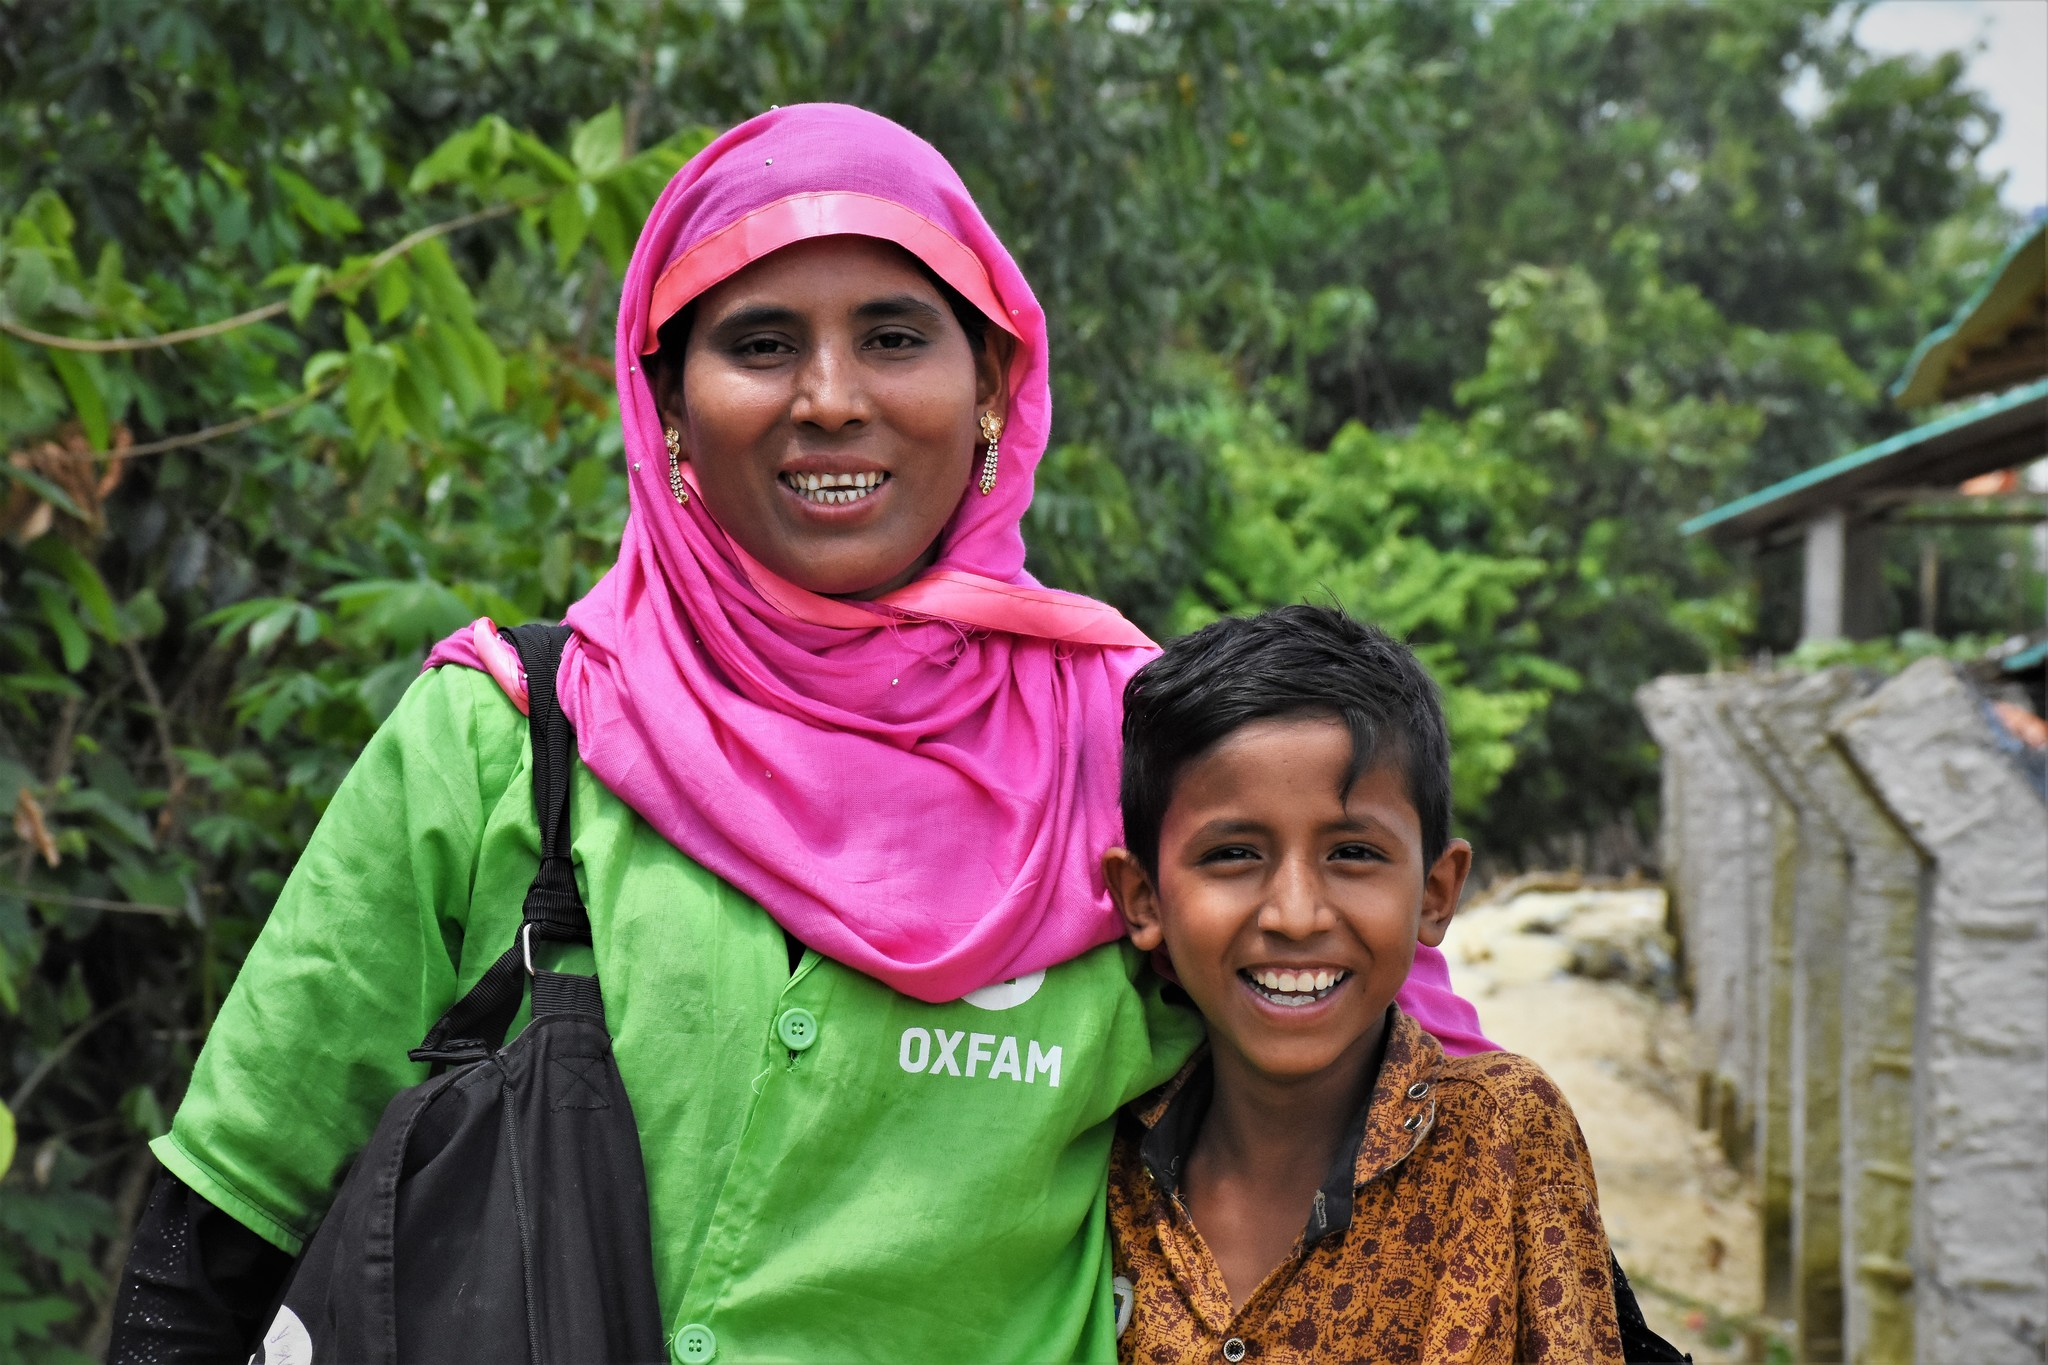 Minara*, 28, watched the play with her son Ershad*, 10